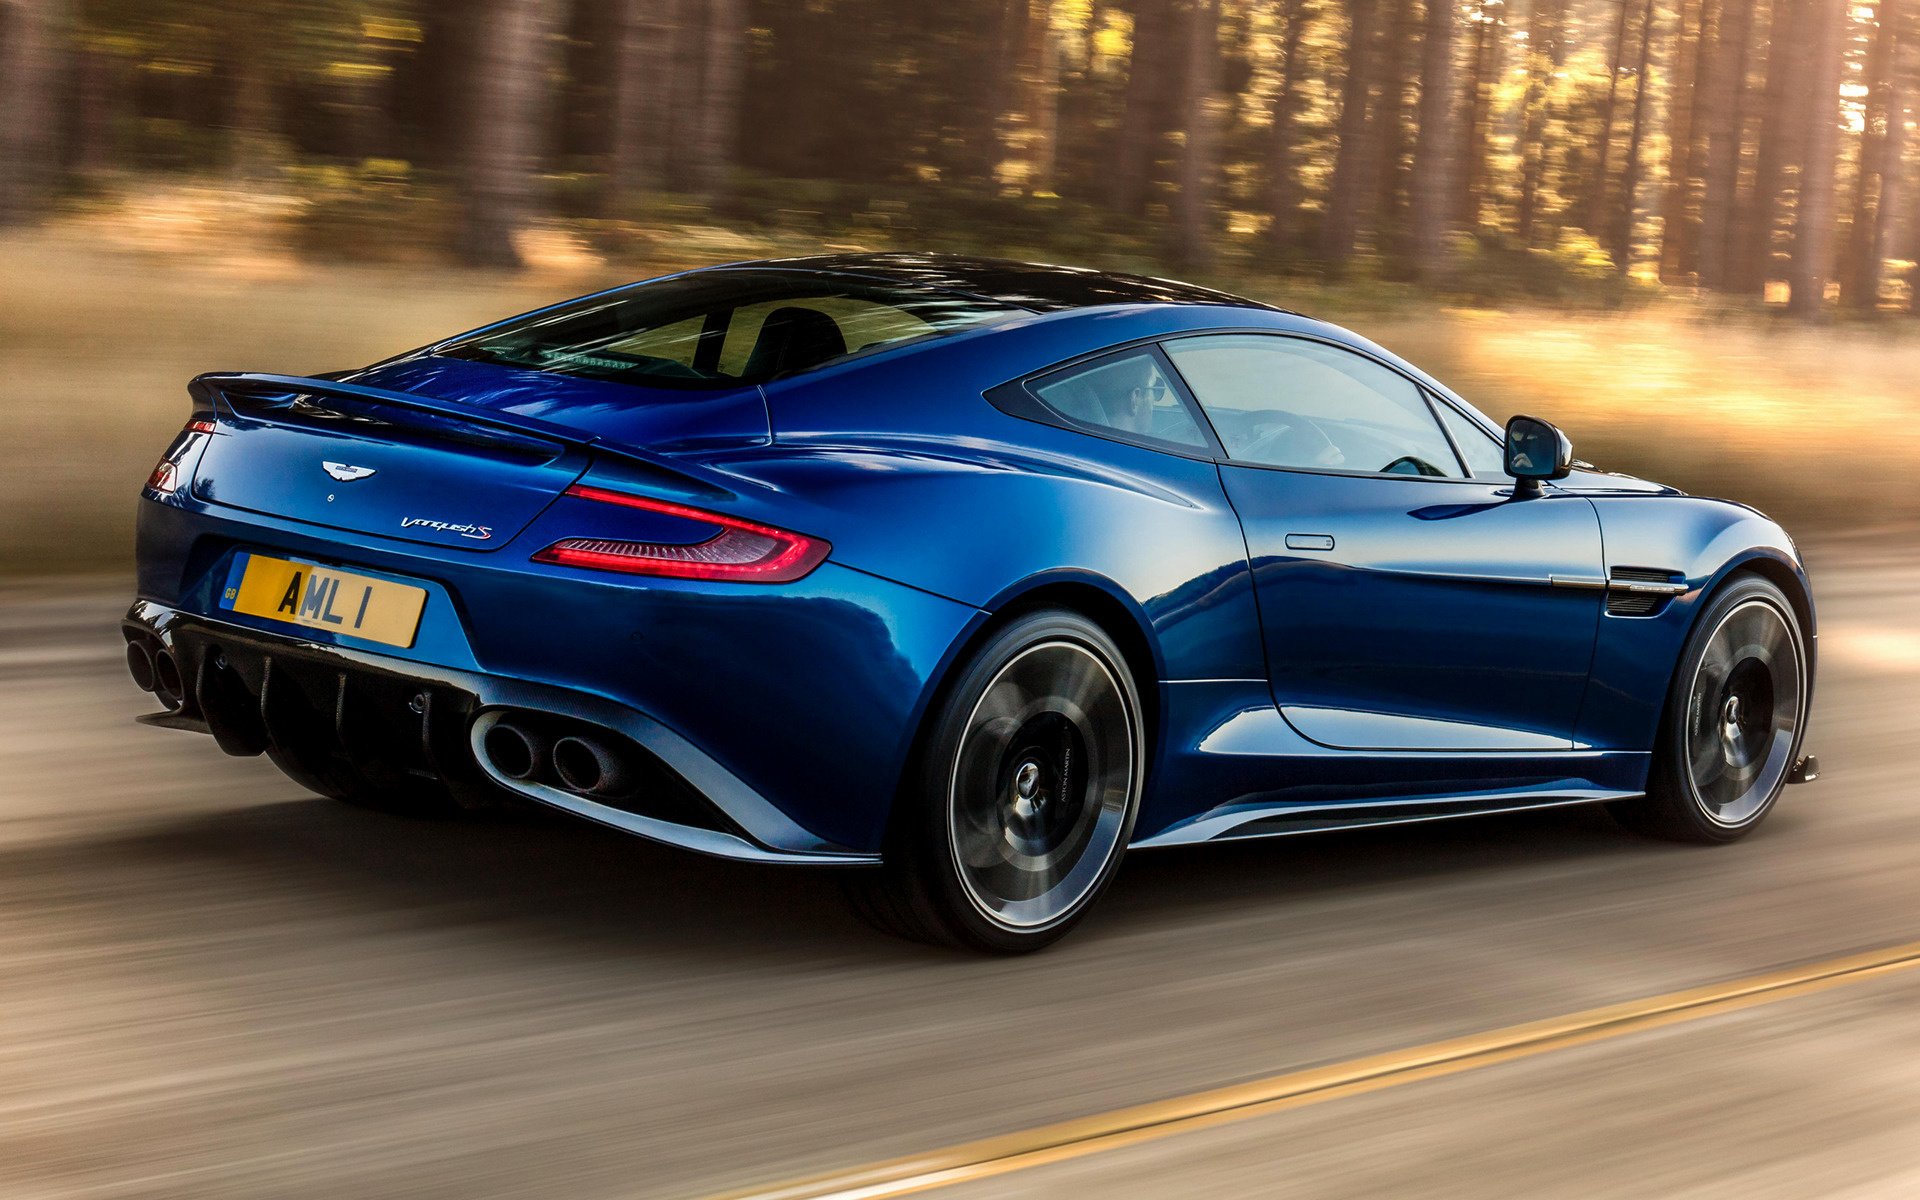 2017 Aston Martin Vanquish S UK   Wallpapers and HD Images Car 1920x1200